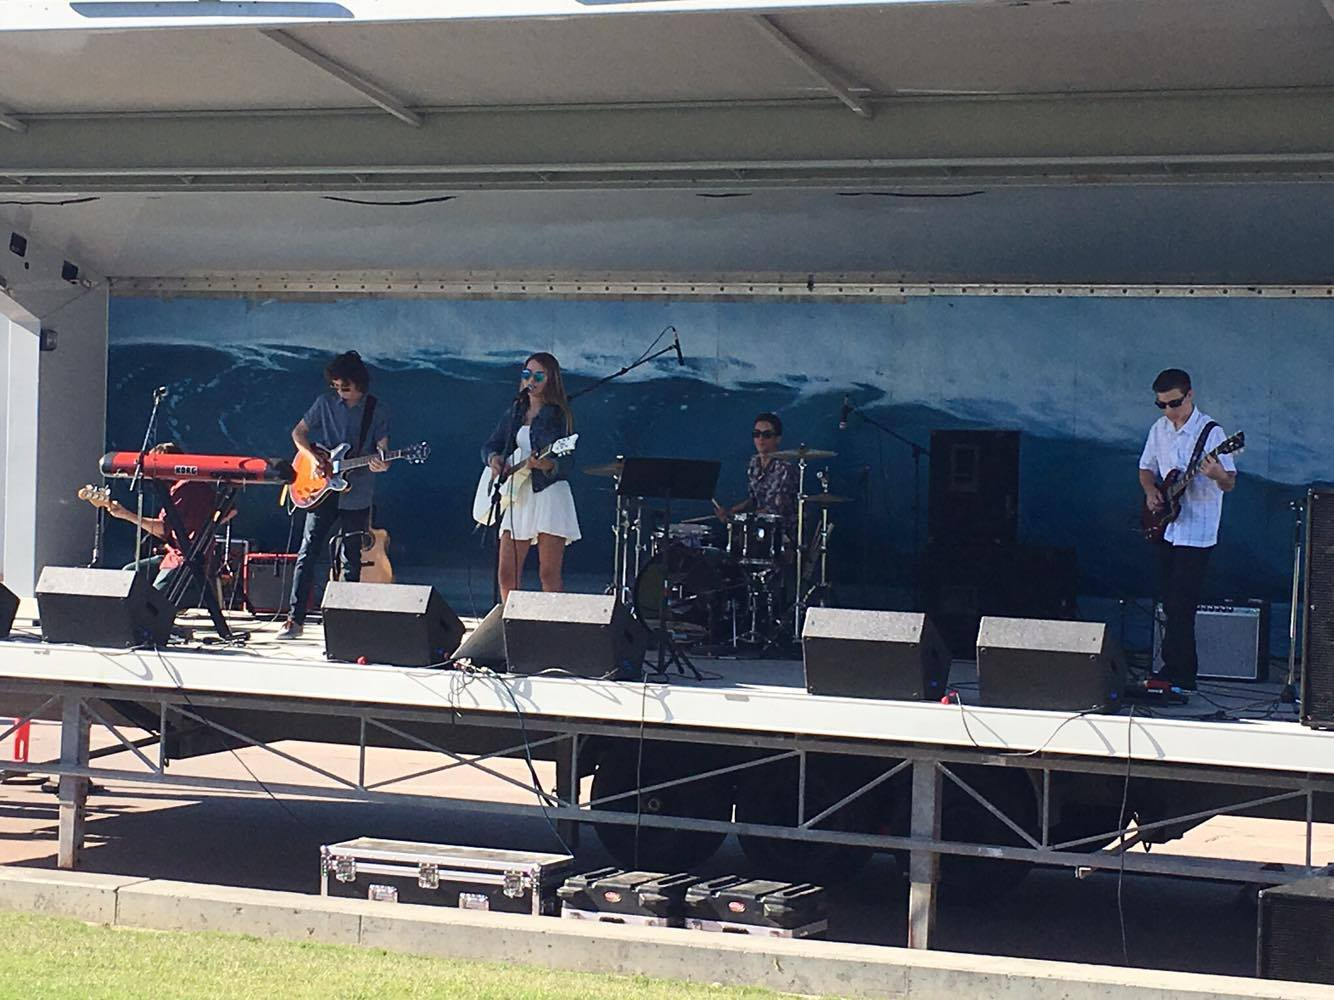 Olivia Ooms and The Resistors performing at Pier Plaza